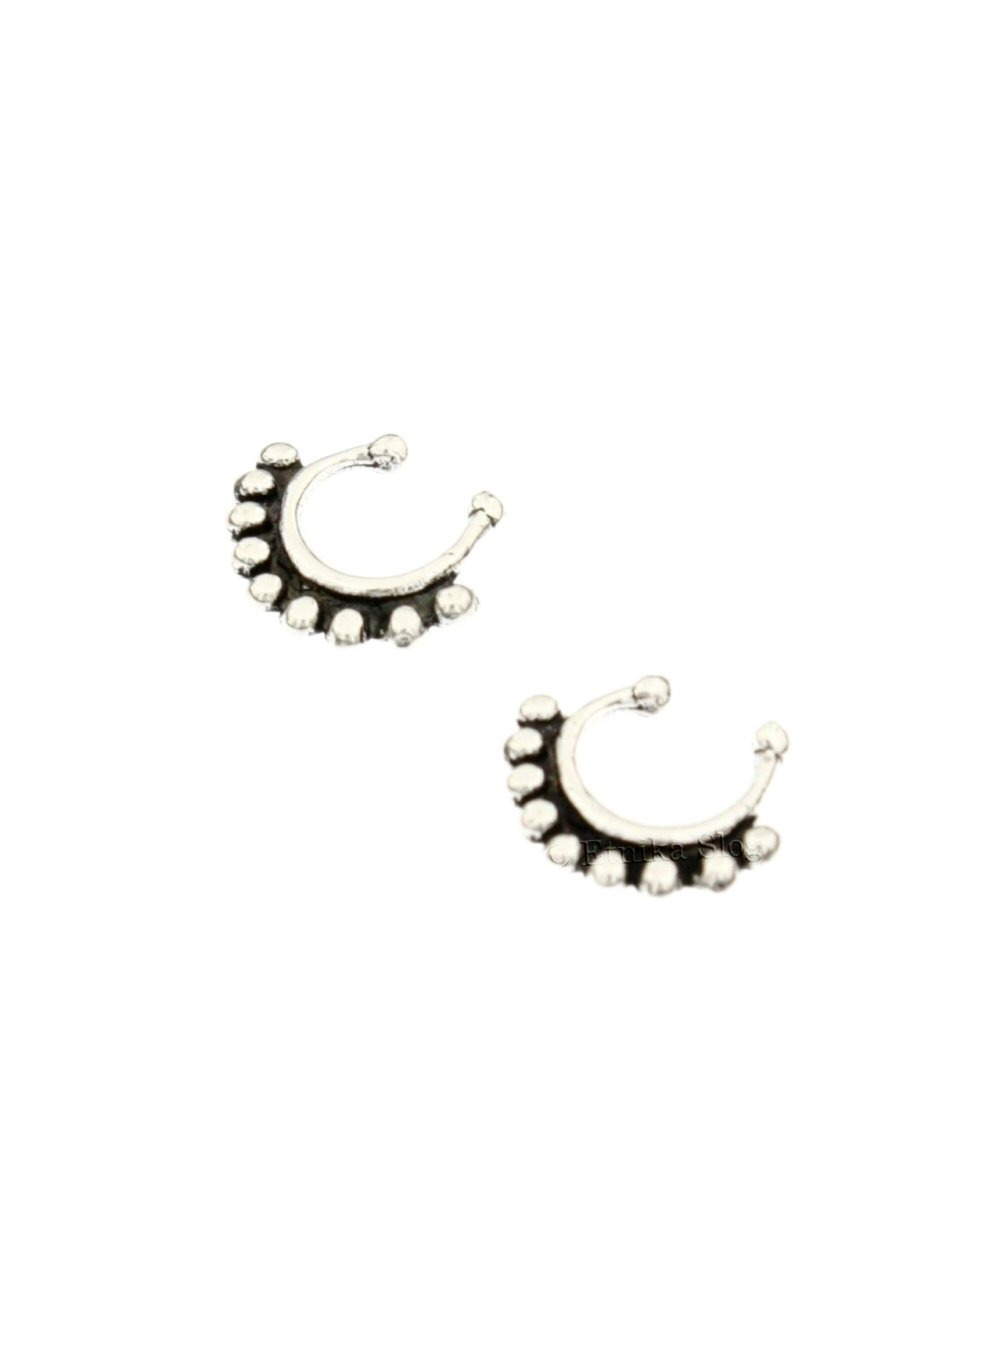 MINI EARRINGS AND NOSE RINGS - SEPTUM ARG-1OR360-10 - Oriente Import S.r.l.